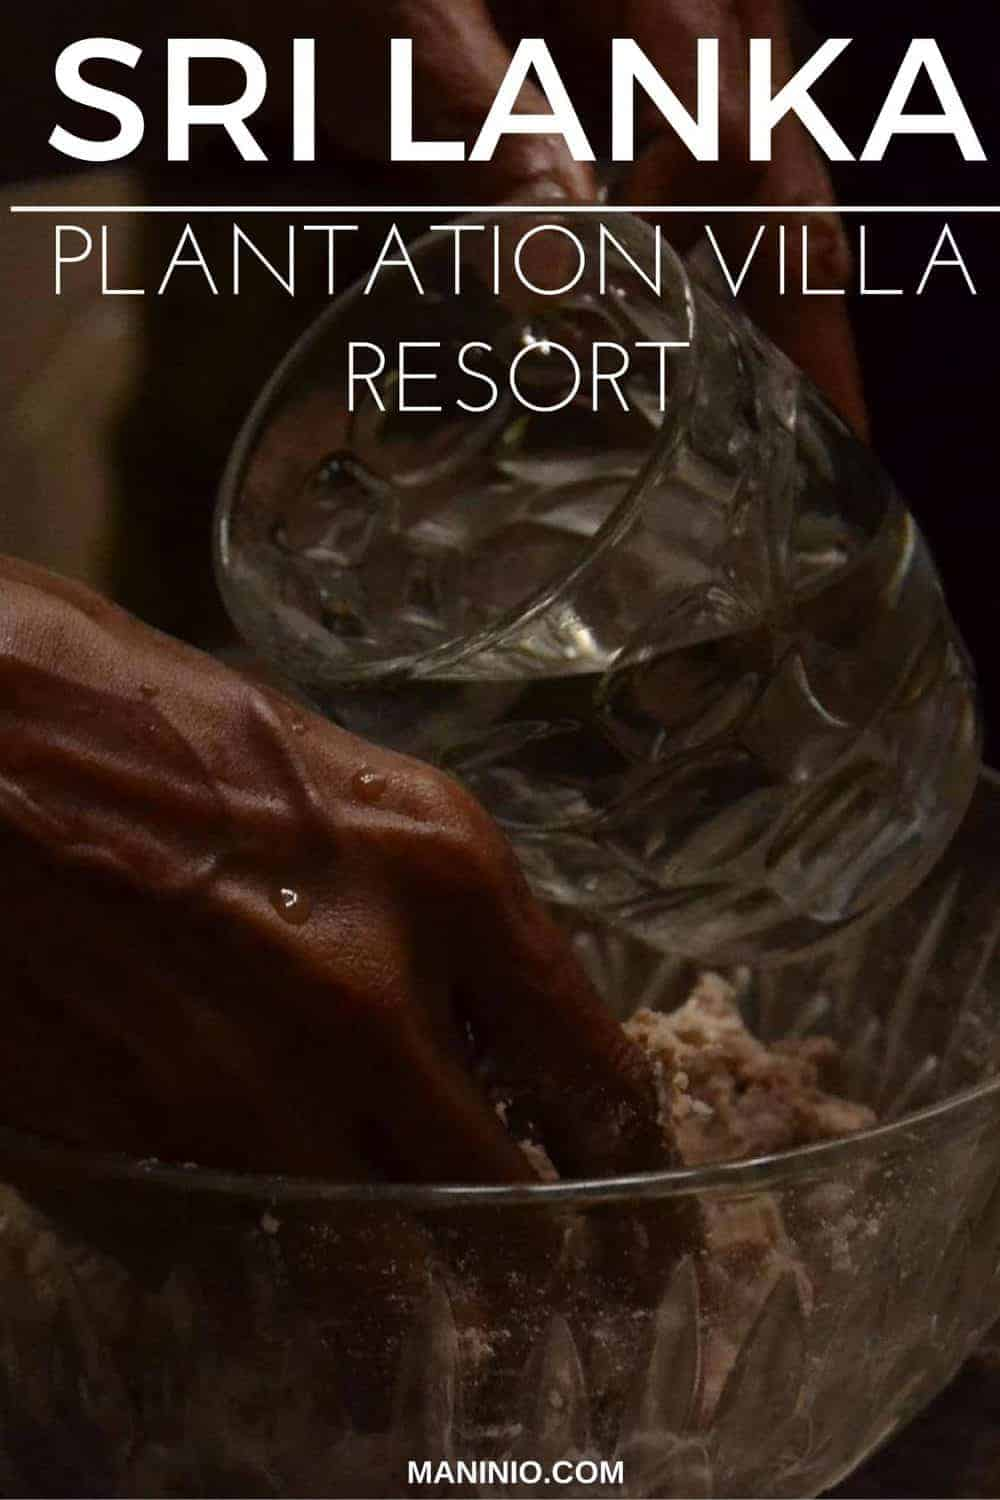 Plantation villa resort cooking class, Sri Lanka. maninio.com #resortsrilanka #cookingclasssrilanka